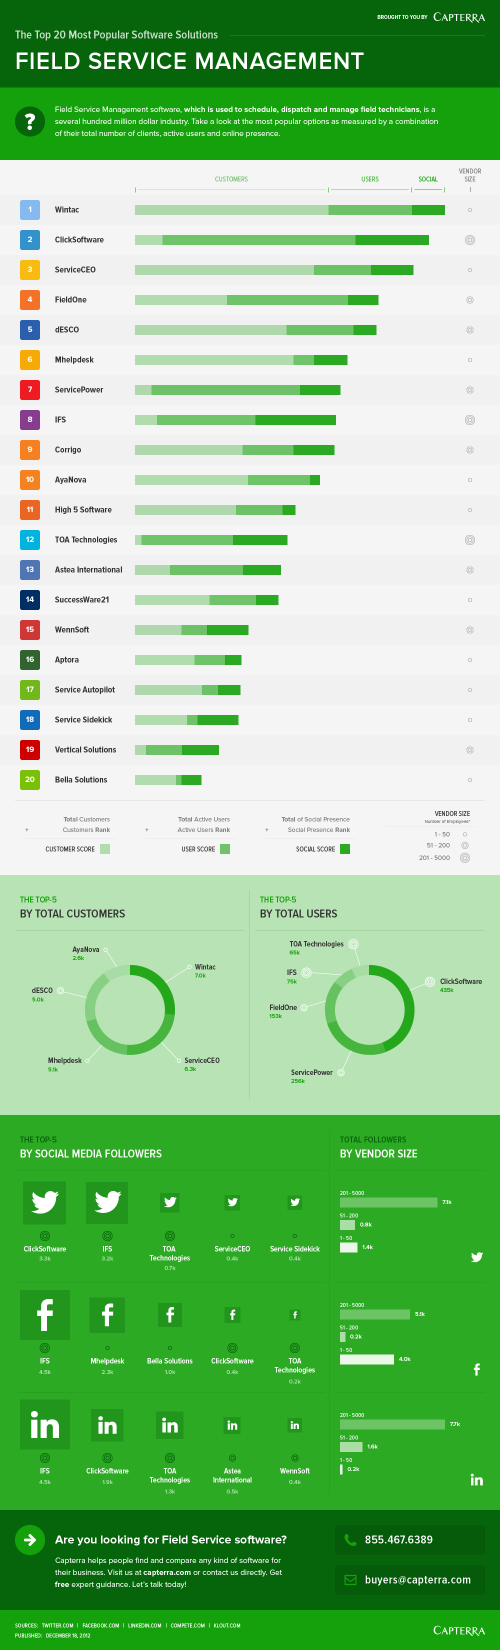 Top 20 Field Service Management Software Solutions infographic